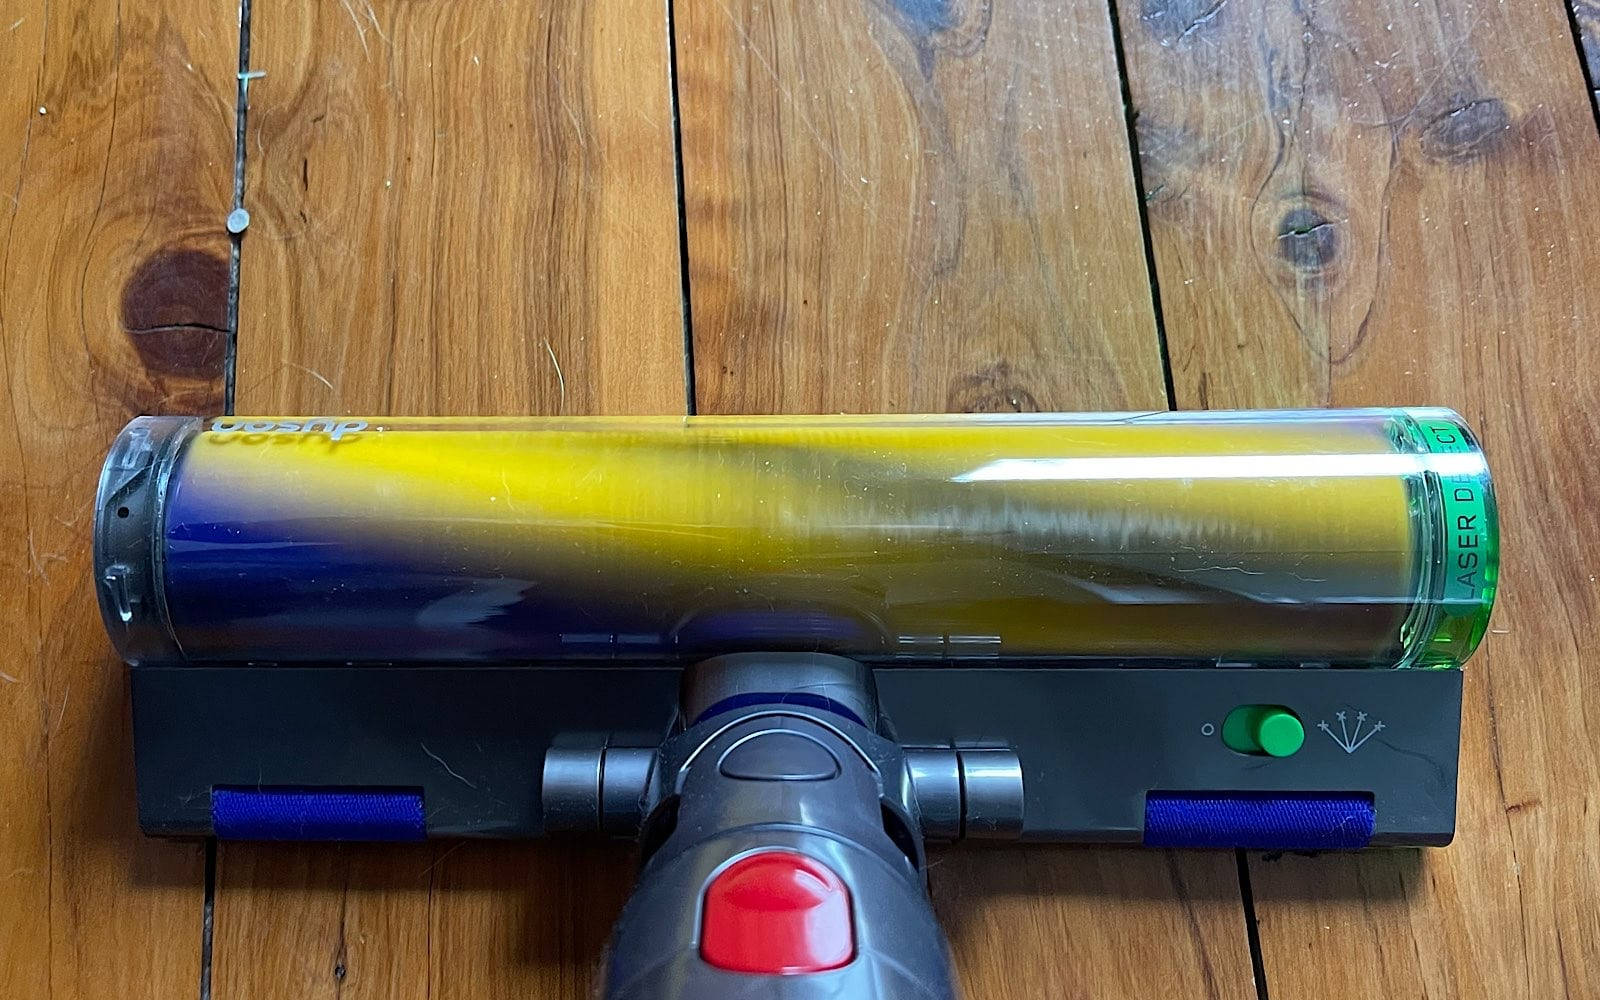 The laser detect head of the Dyson V15 works on other Dyson vacuums, too.